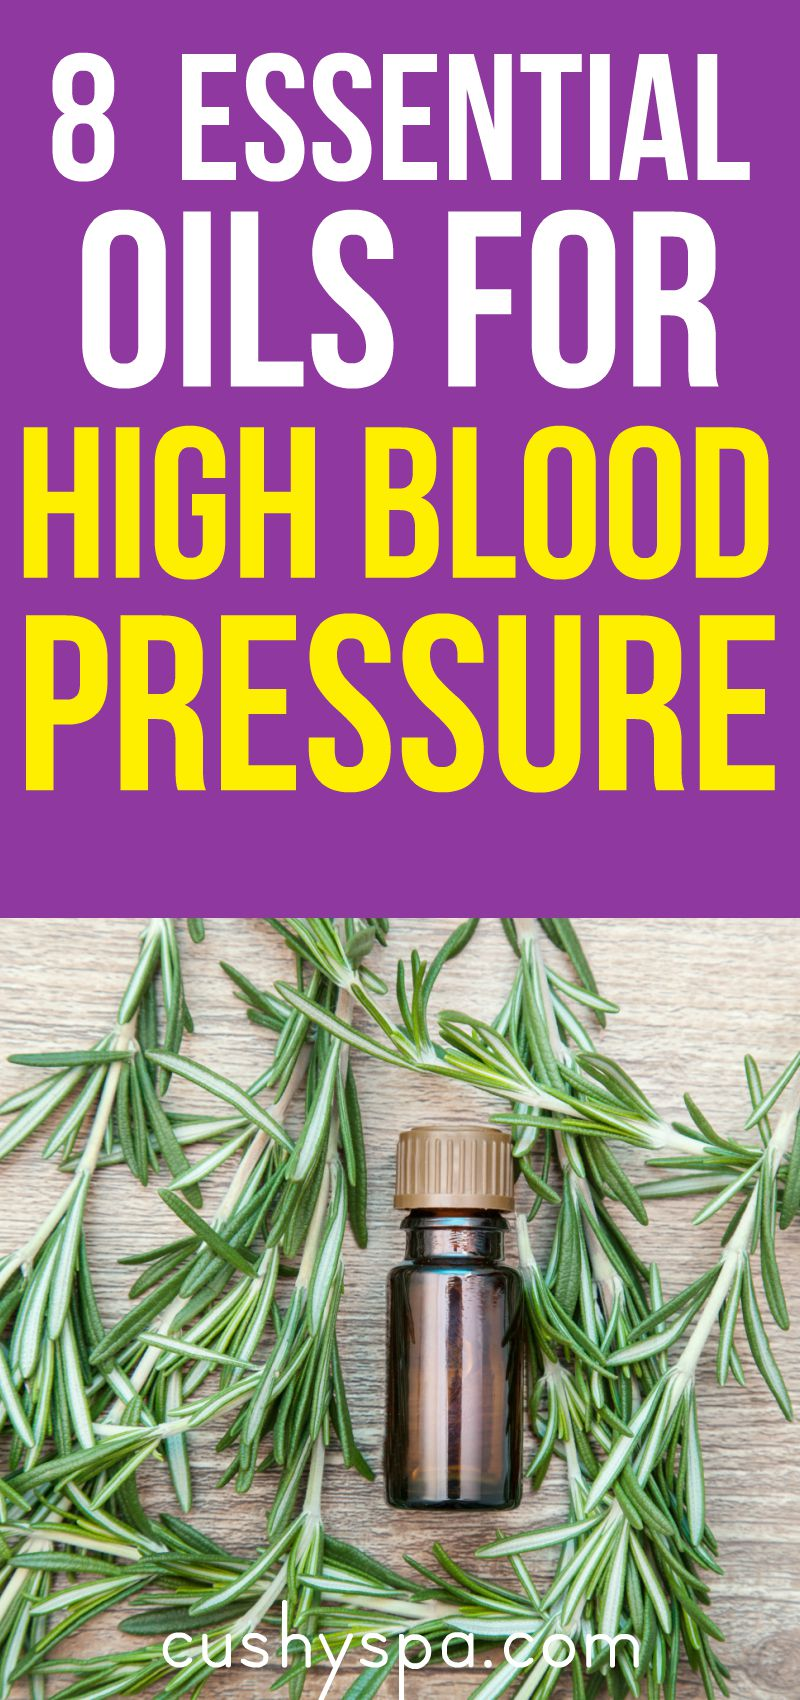 8 Essential Oils for High Blood Pressure